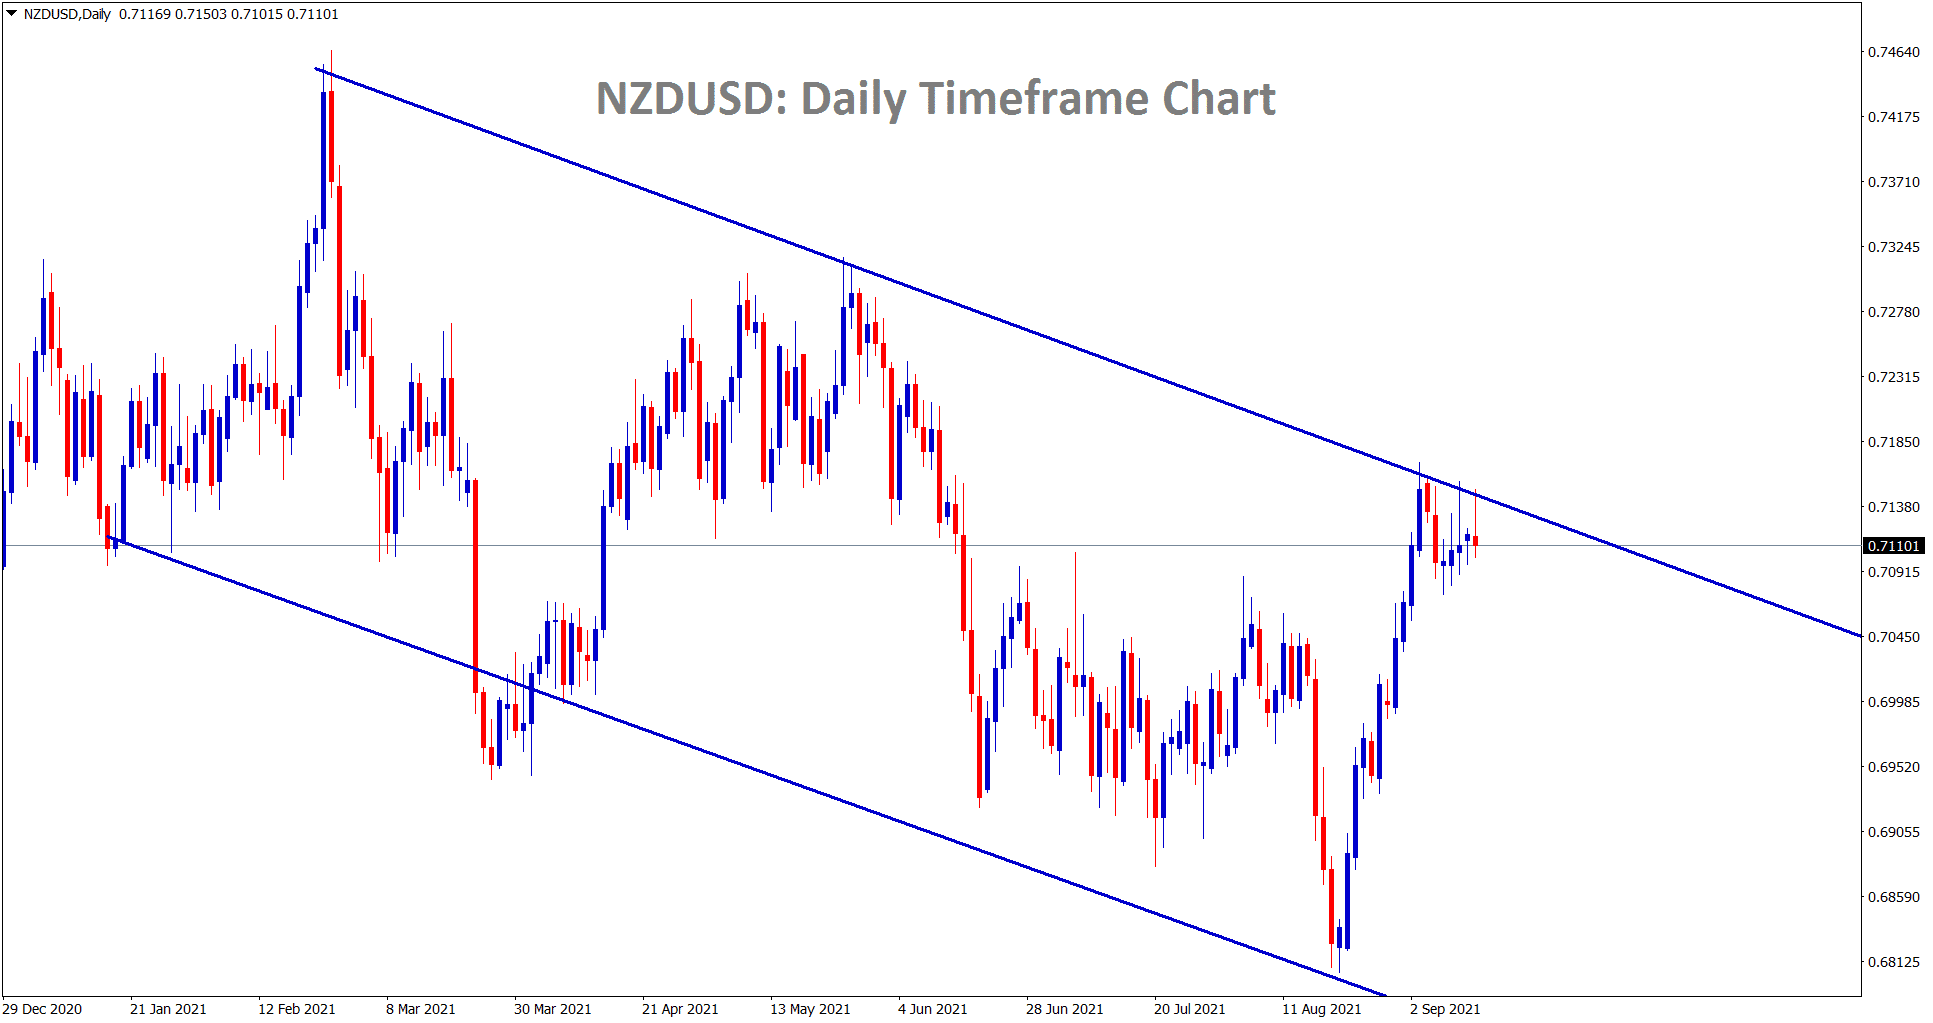 NZDUSD is consolidating at the lower high area of the descending channel line